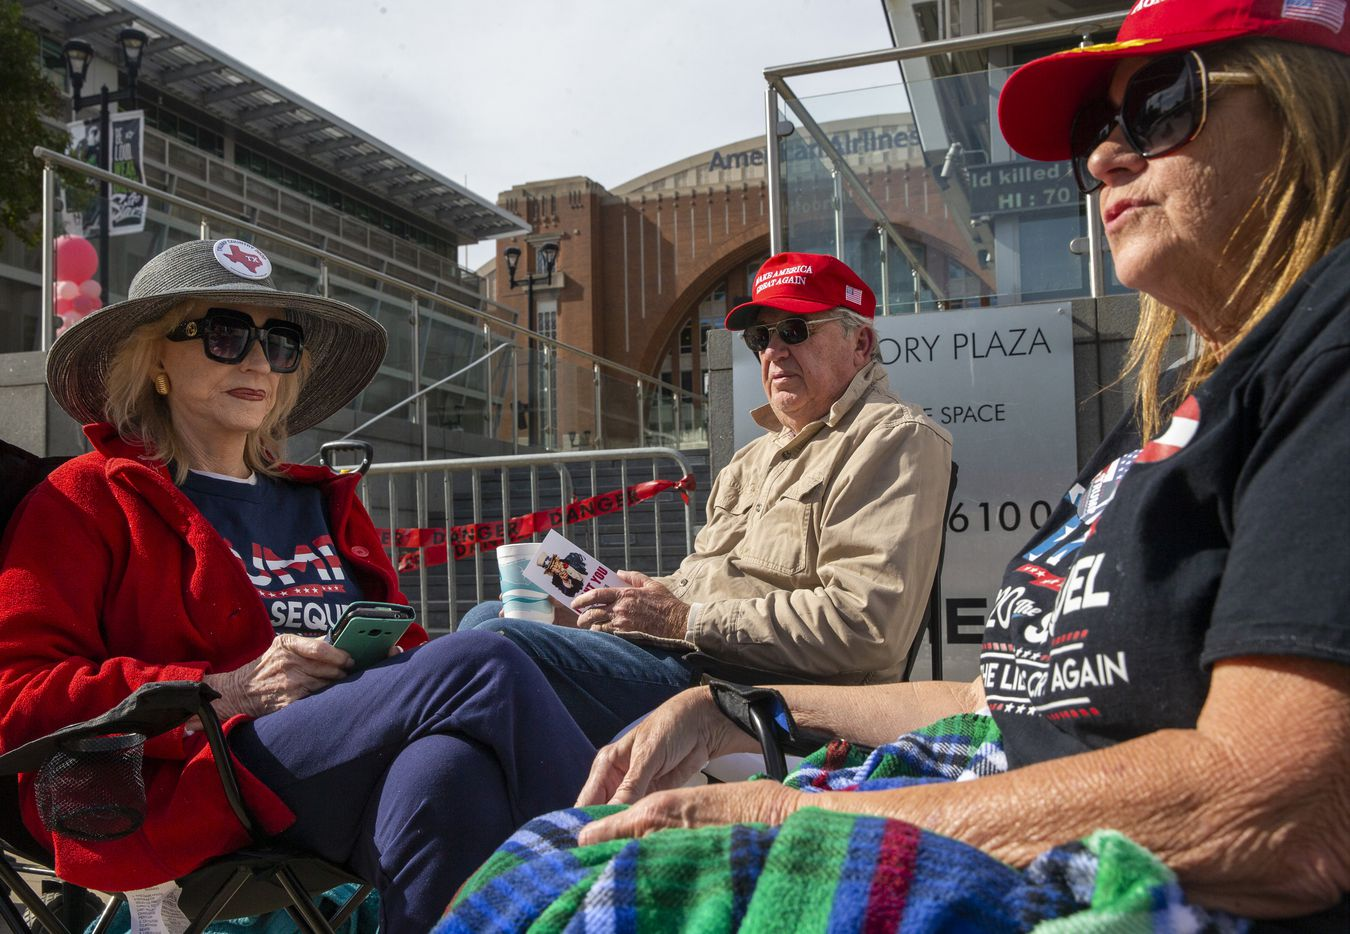 (From left) Janice Hawley and Jay Hawley, from Dallas, and Benita Russell from Fort Worth, Texas, camp out in line in front of the American Airlines Center in Dallas on Wednesday, Oct. 16, 2019. President Donald Trump will host a rally at the center on Thursday evening.